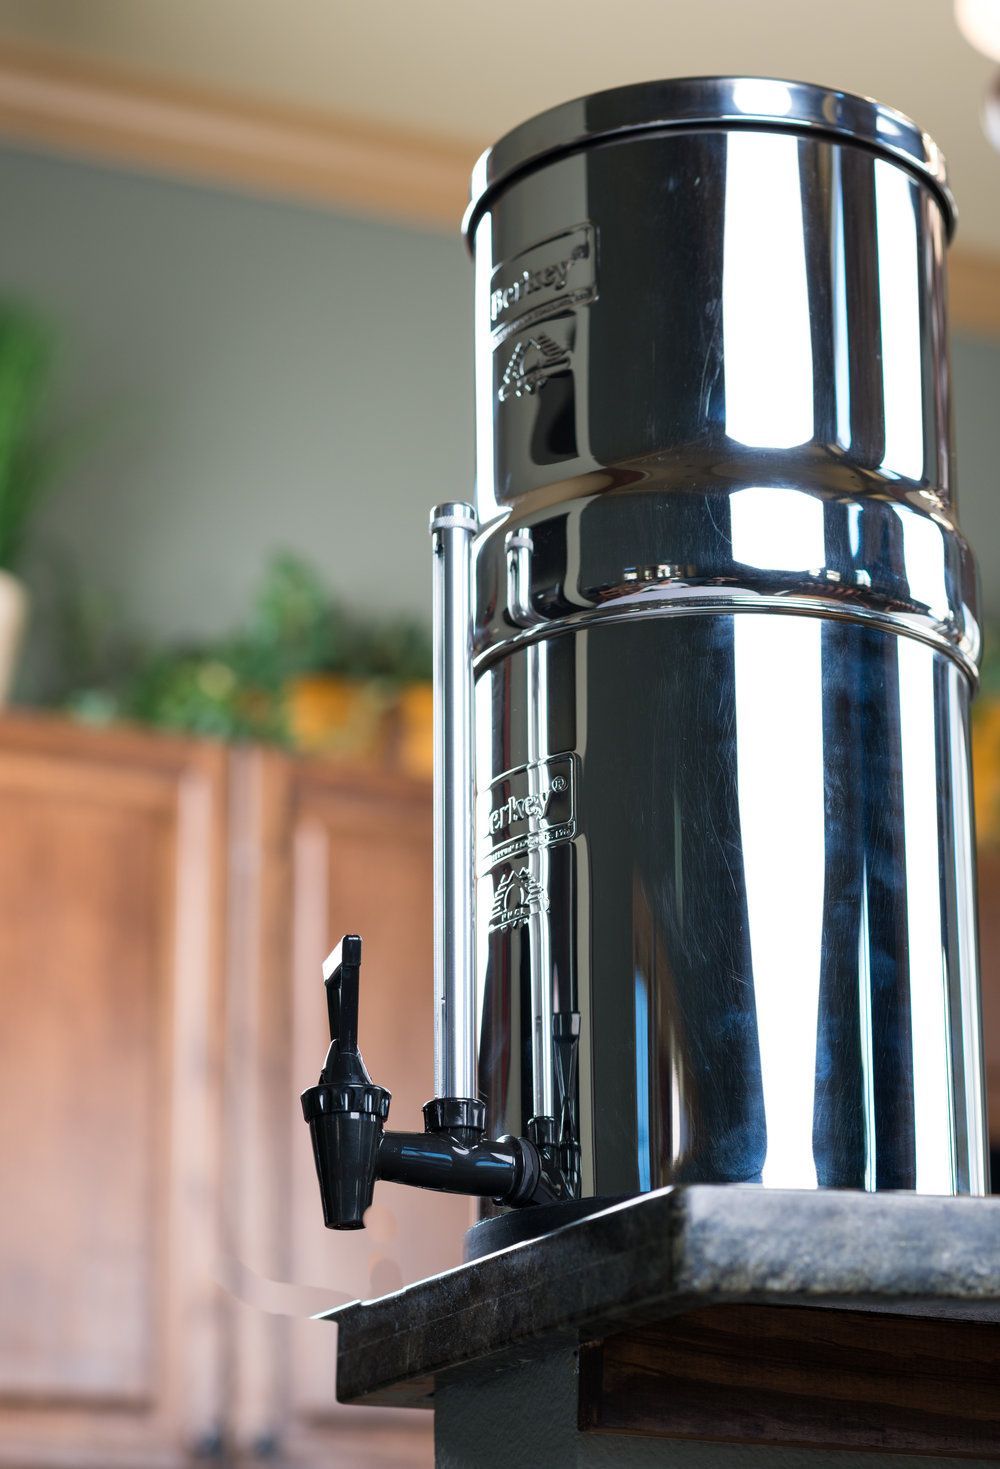 berkey-home-lifestyle-09122017-7.jpg